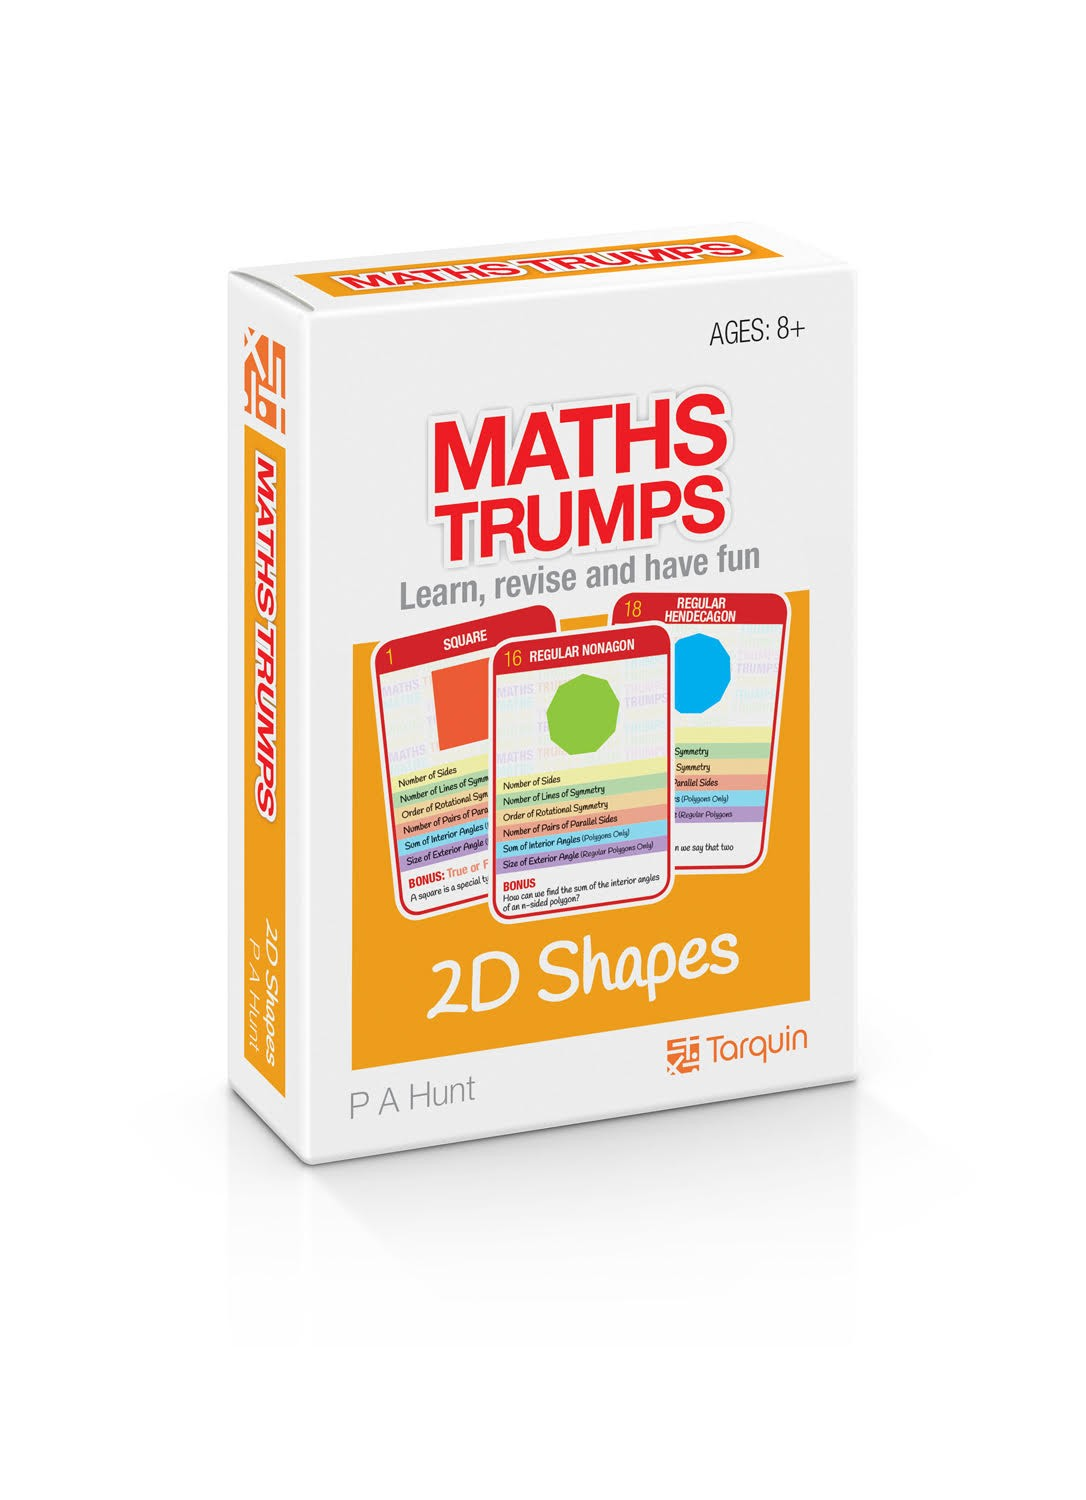 Maths Trumps - 2D Shapes